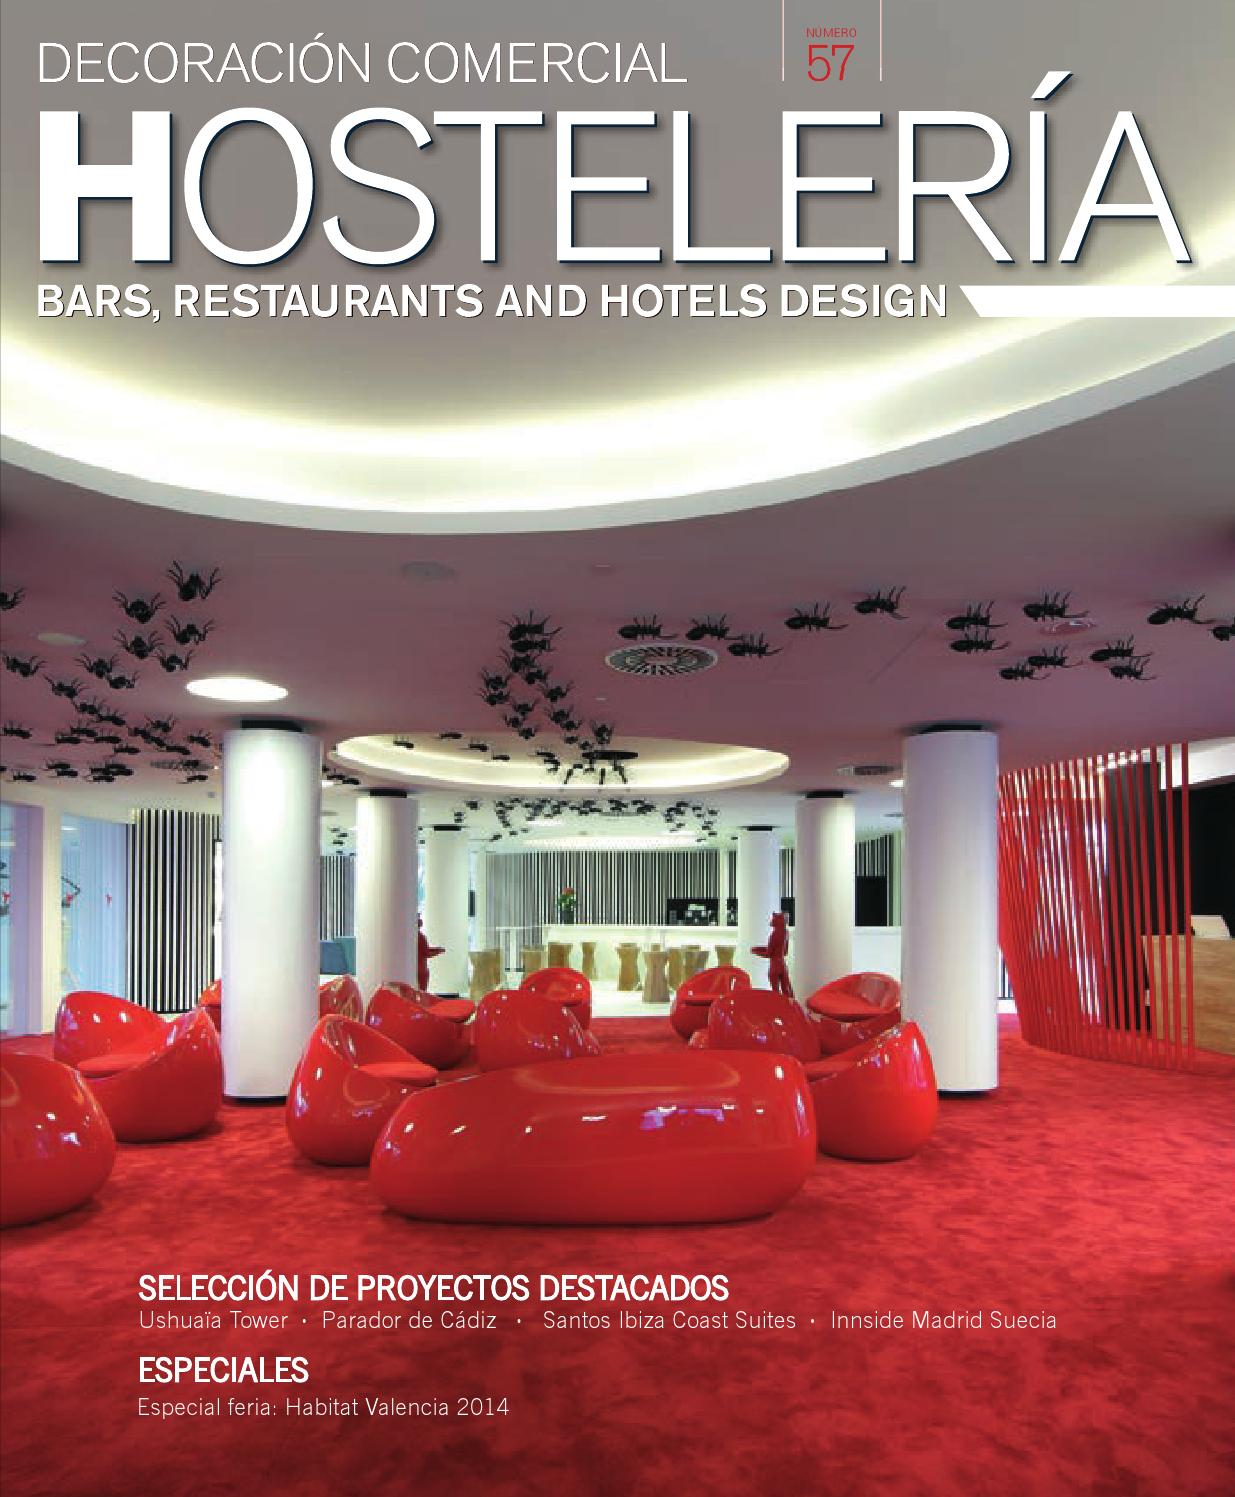 Decoraci N Comercial Hosteler A N 57 By Digital Newspapers S L  # Muebles Canella